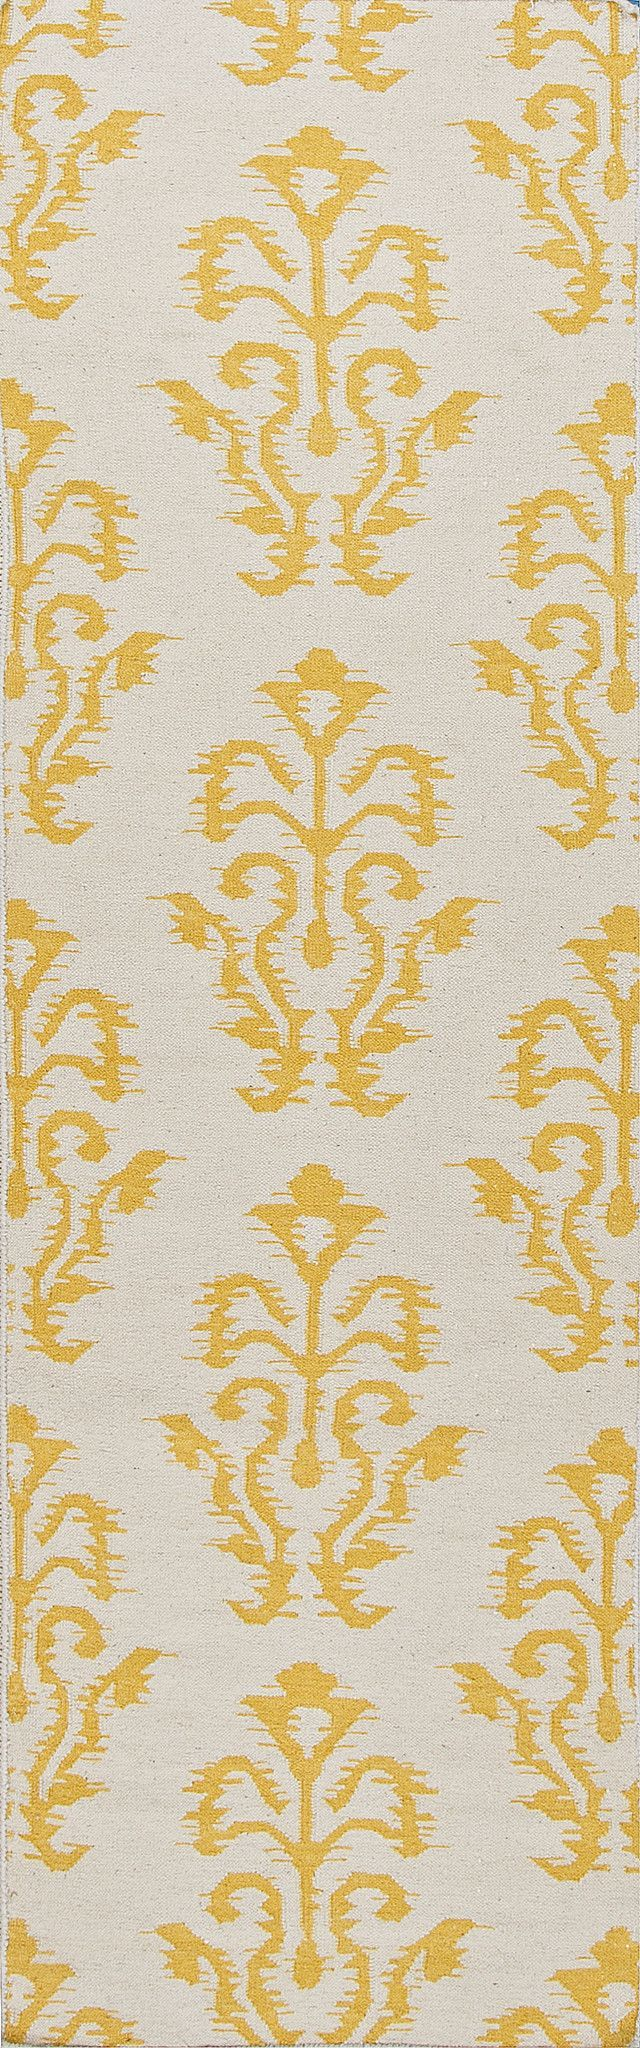 Jaipur Rugs FlatWeave Tribal Pattern Ivory/Yellow Wool Area Rug UB14  (Runner)